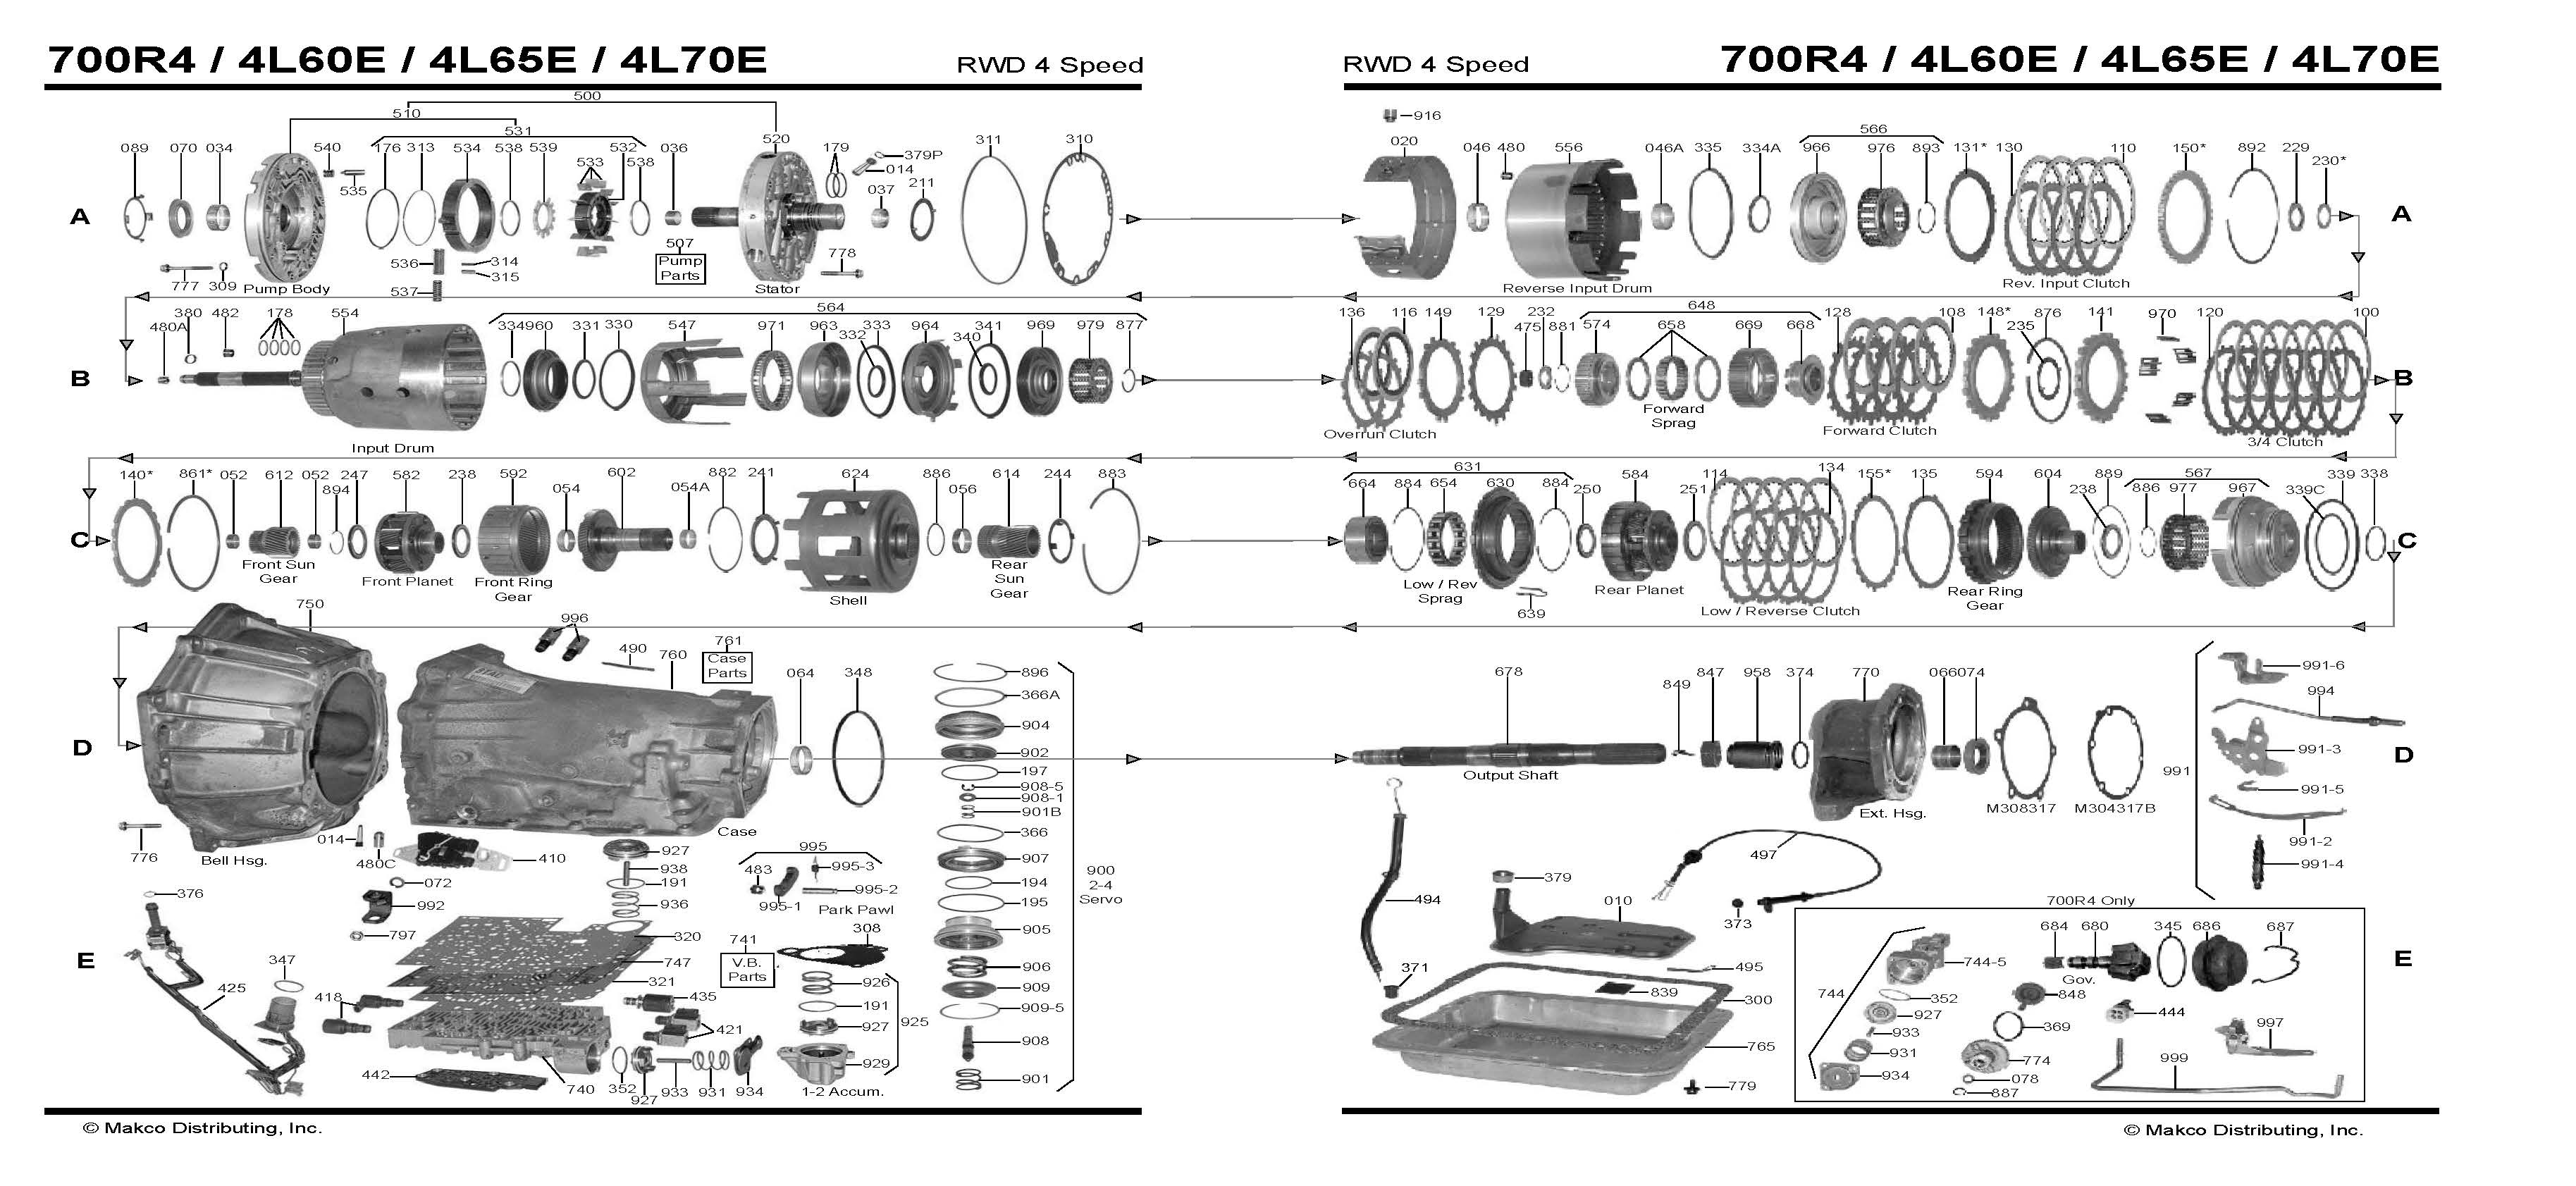 Chevy 700r Transmission Diagram